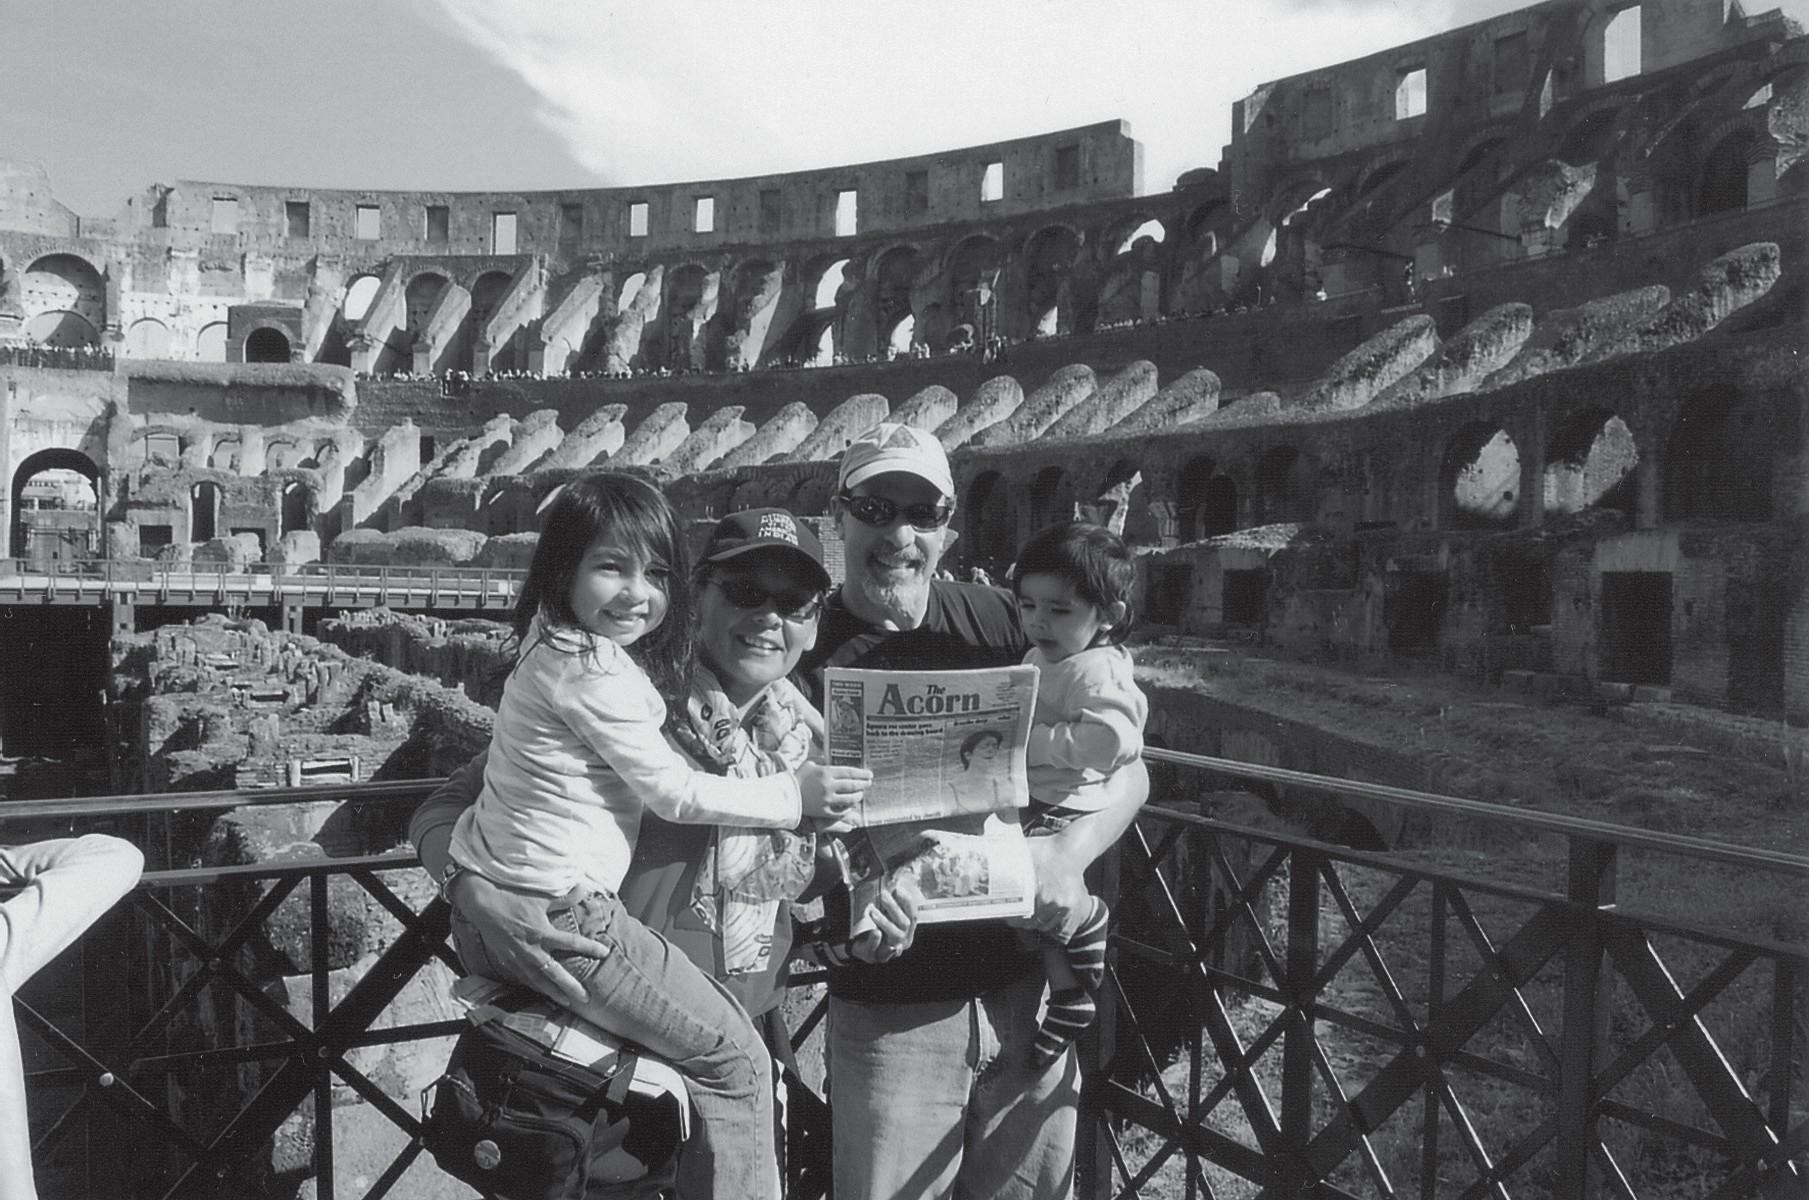 ANCIENT  AMPHITHEATER—Local  residents  hang  out  where  the gladiators once battled  at the ruins of the Coliseum in Rome. In the photo are Viktoria Larson-Green, Eva Larson, Michael Green and Ellis Green.